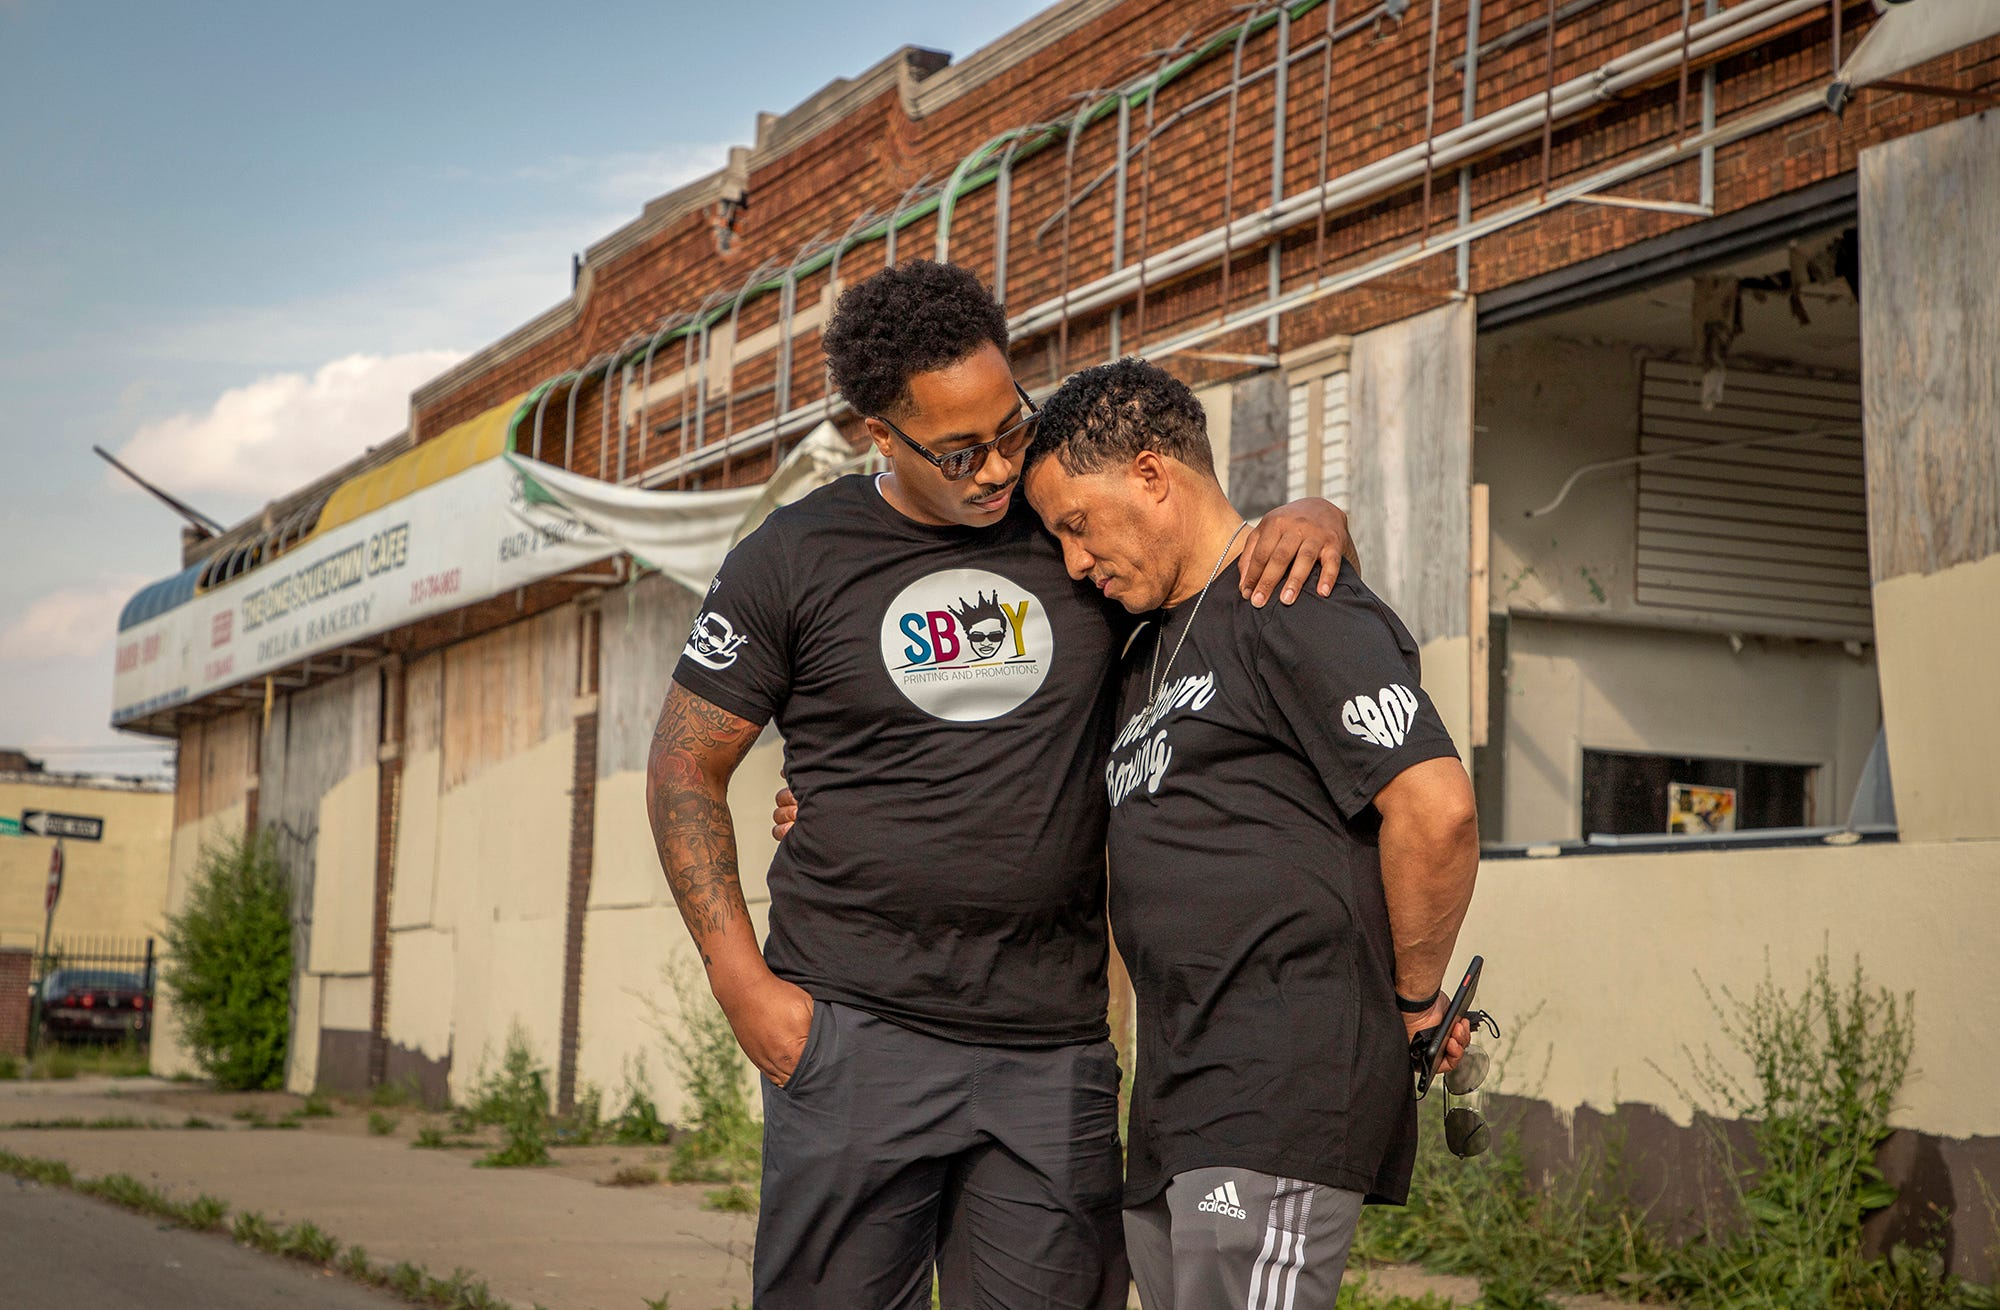 """David Woods Jr., 33, left, hugs his father David 'Bing"""" Shumate, 58, as they stand in front of the block of businesses on Tireman Ave. where they both shared business space in Detroit on June 18, 2021. Woods' dream started almost 25 years ago when he decided to start Enjoy Detroits father company, SBOY (Successful Brothers of Youth) Printing, inside of a dollar store owned by his father."""